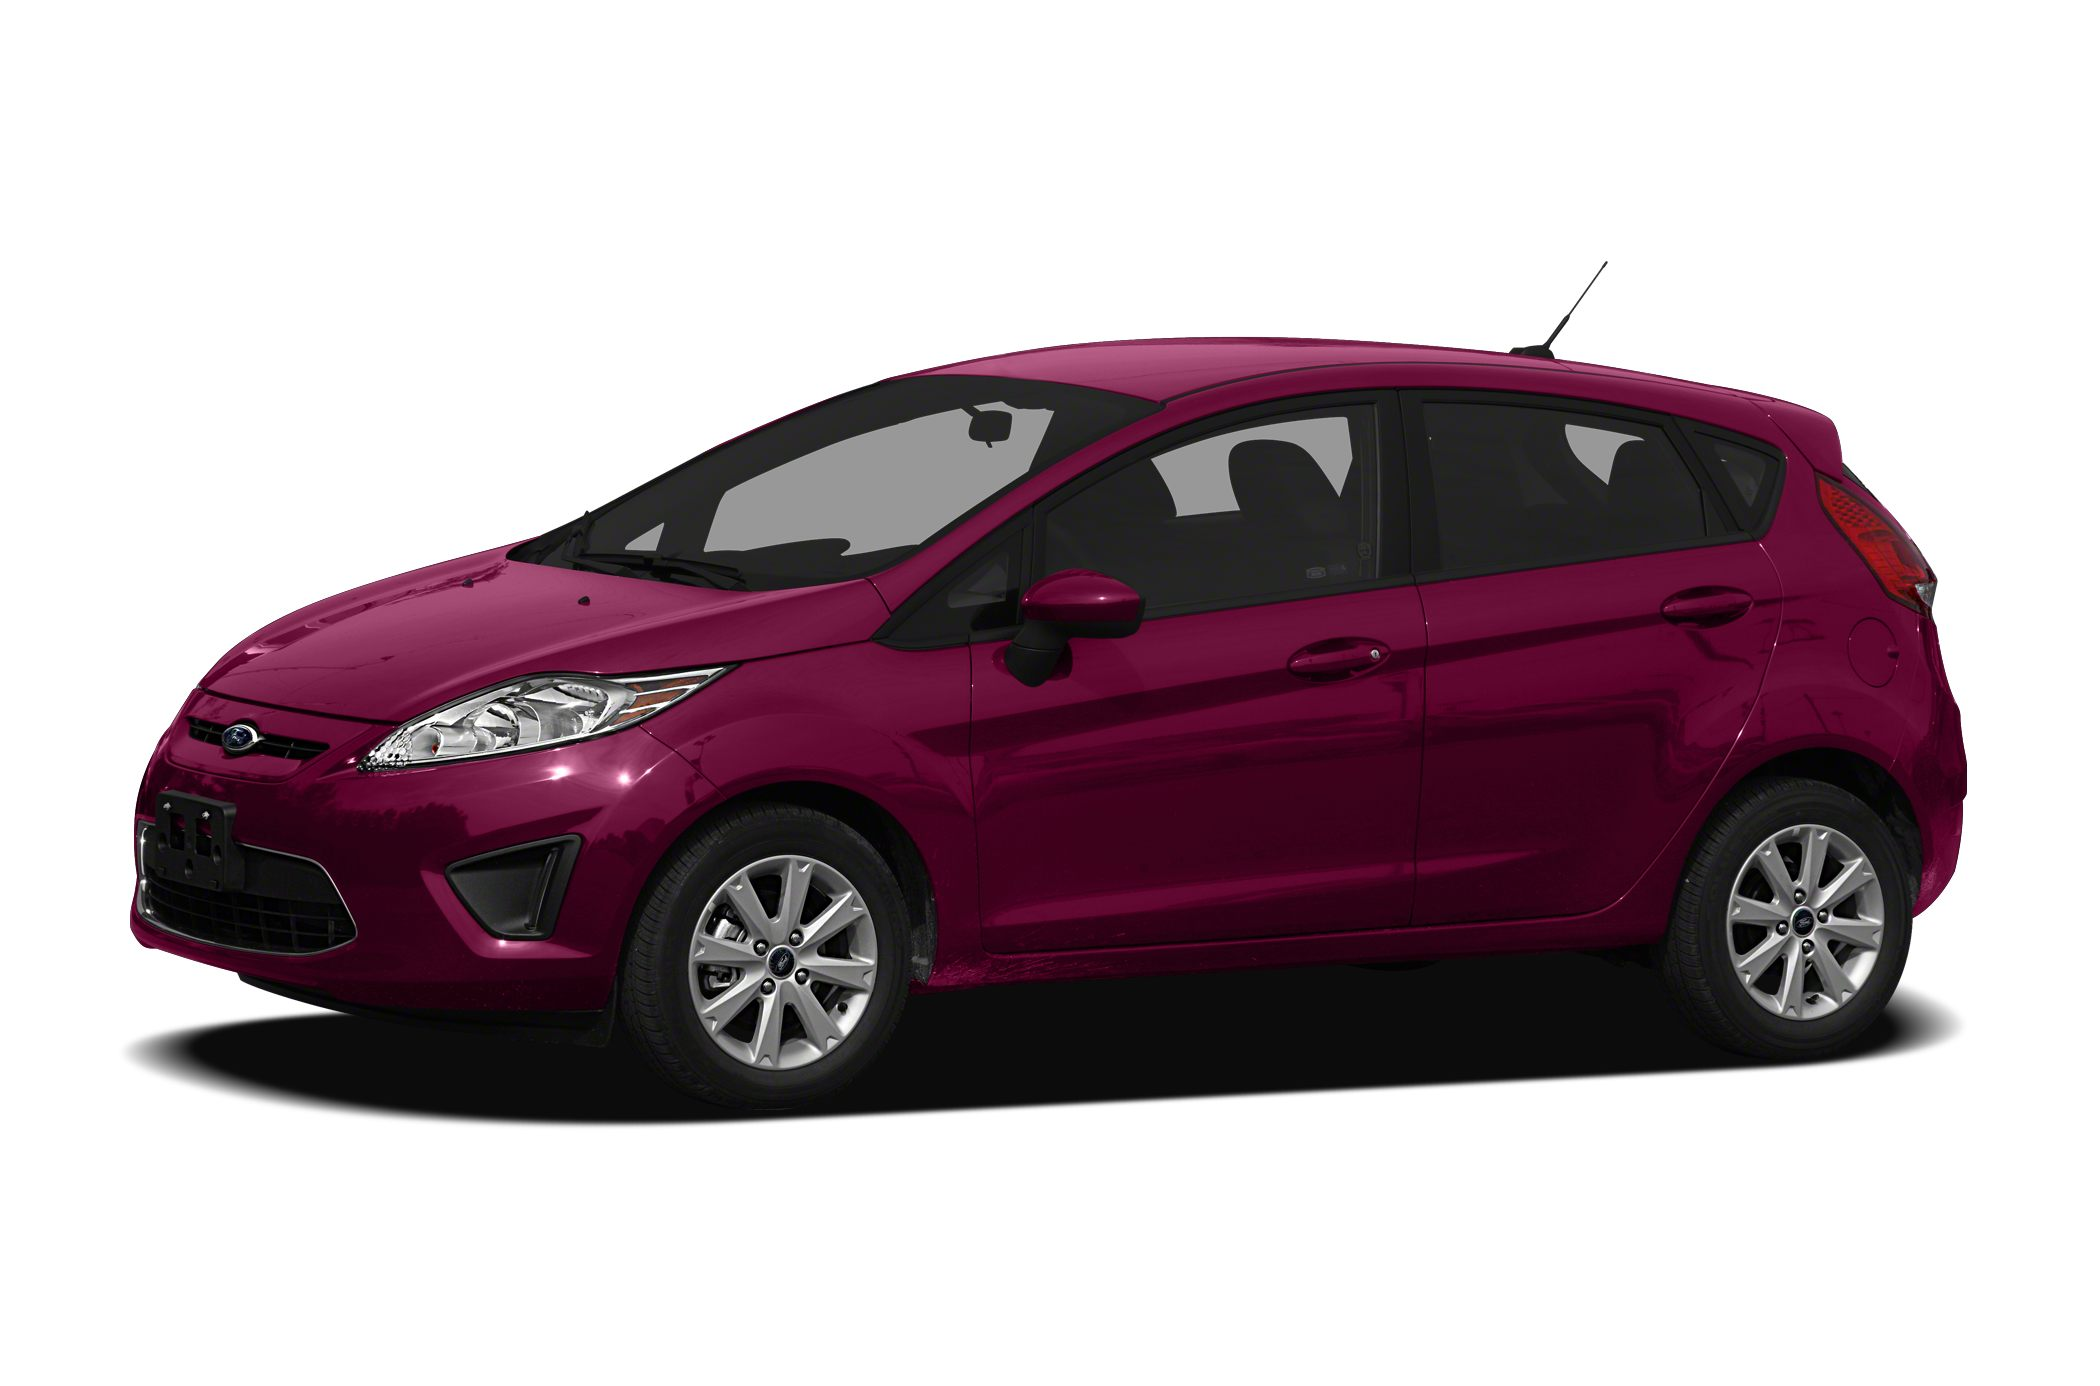 2011 Ford Fiesta SES Hatchback for sale in Mechanicville for $14,990 with 6,402 miles.